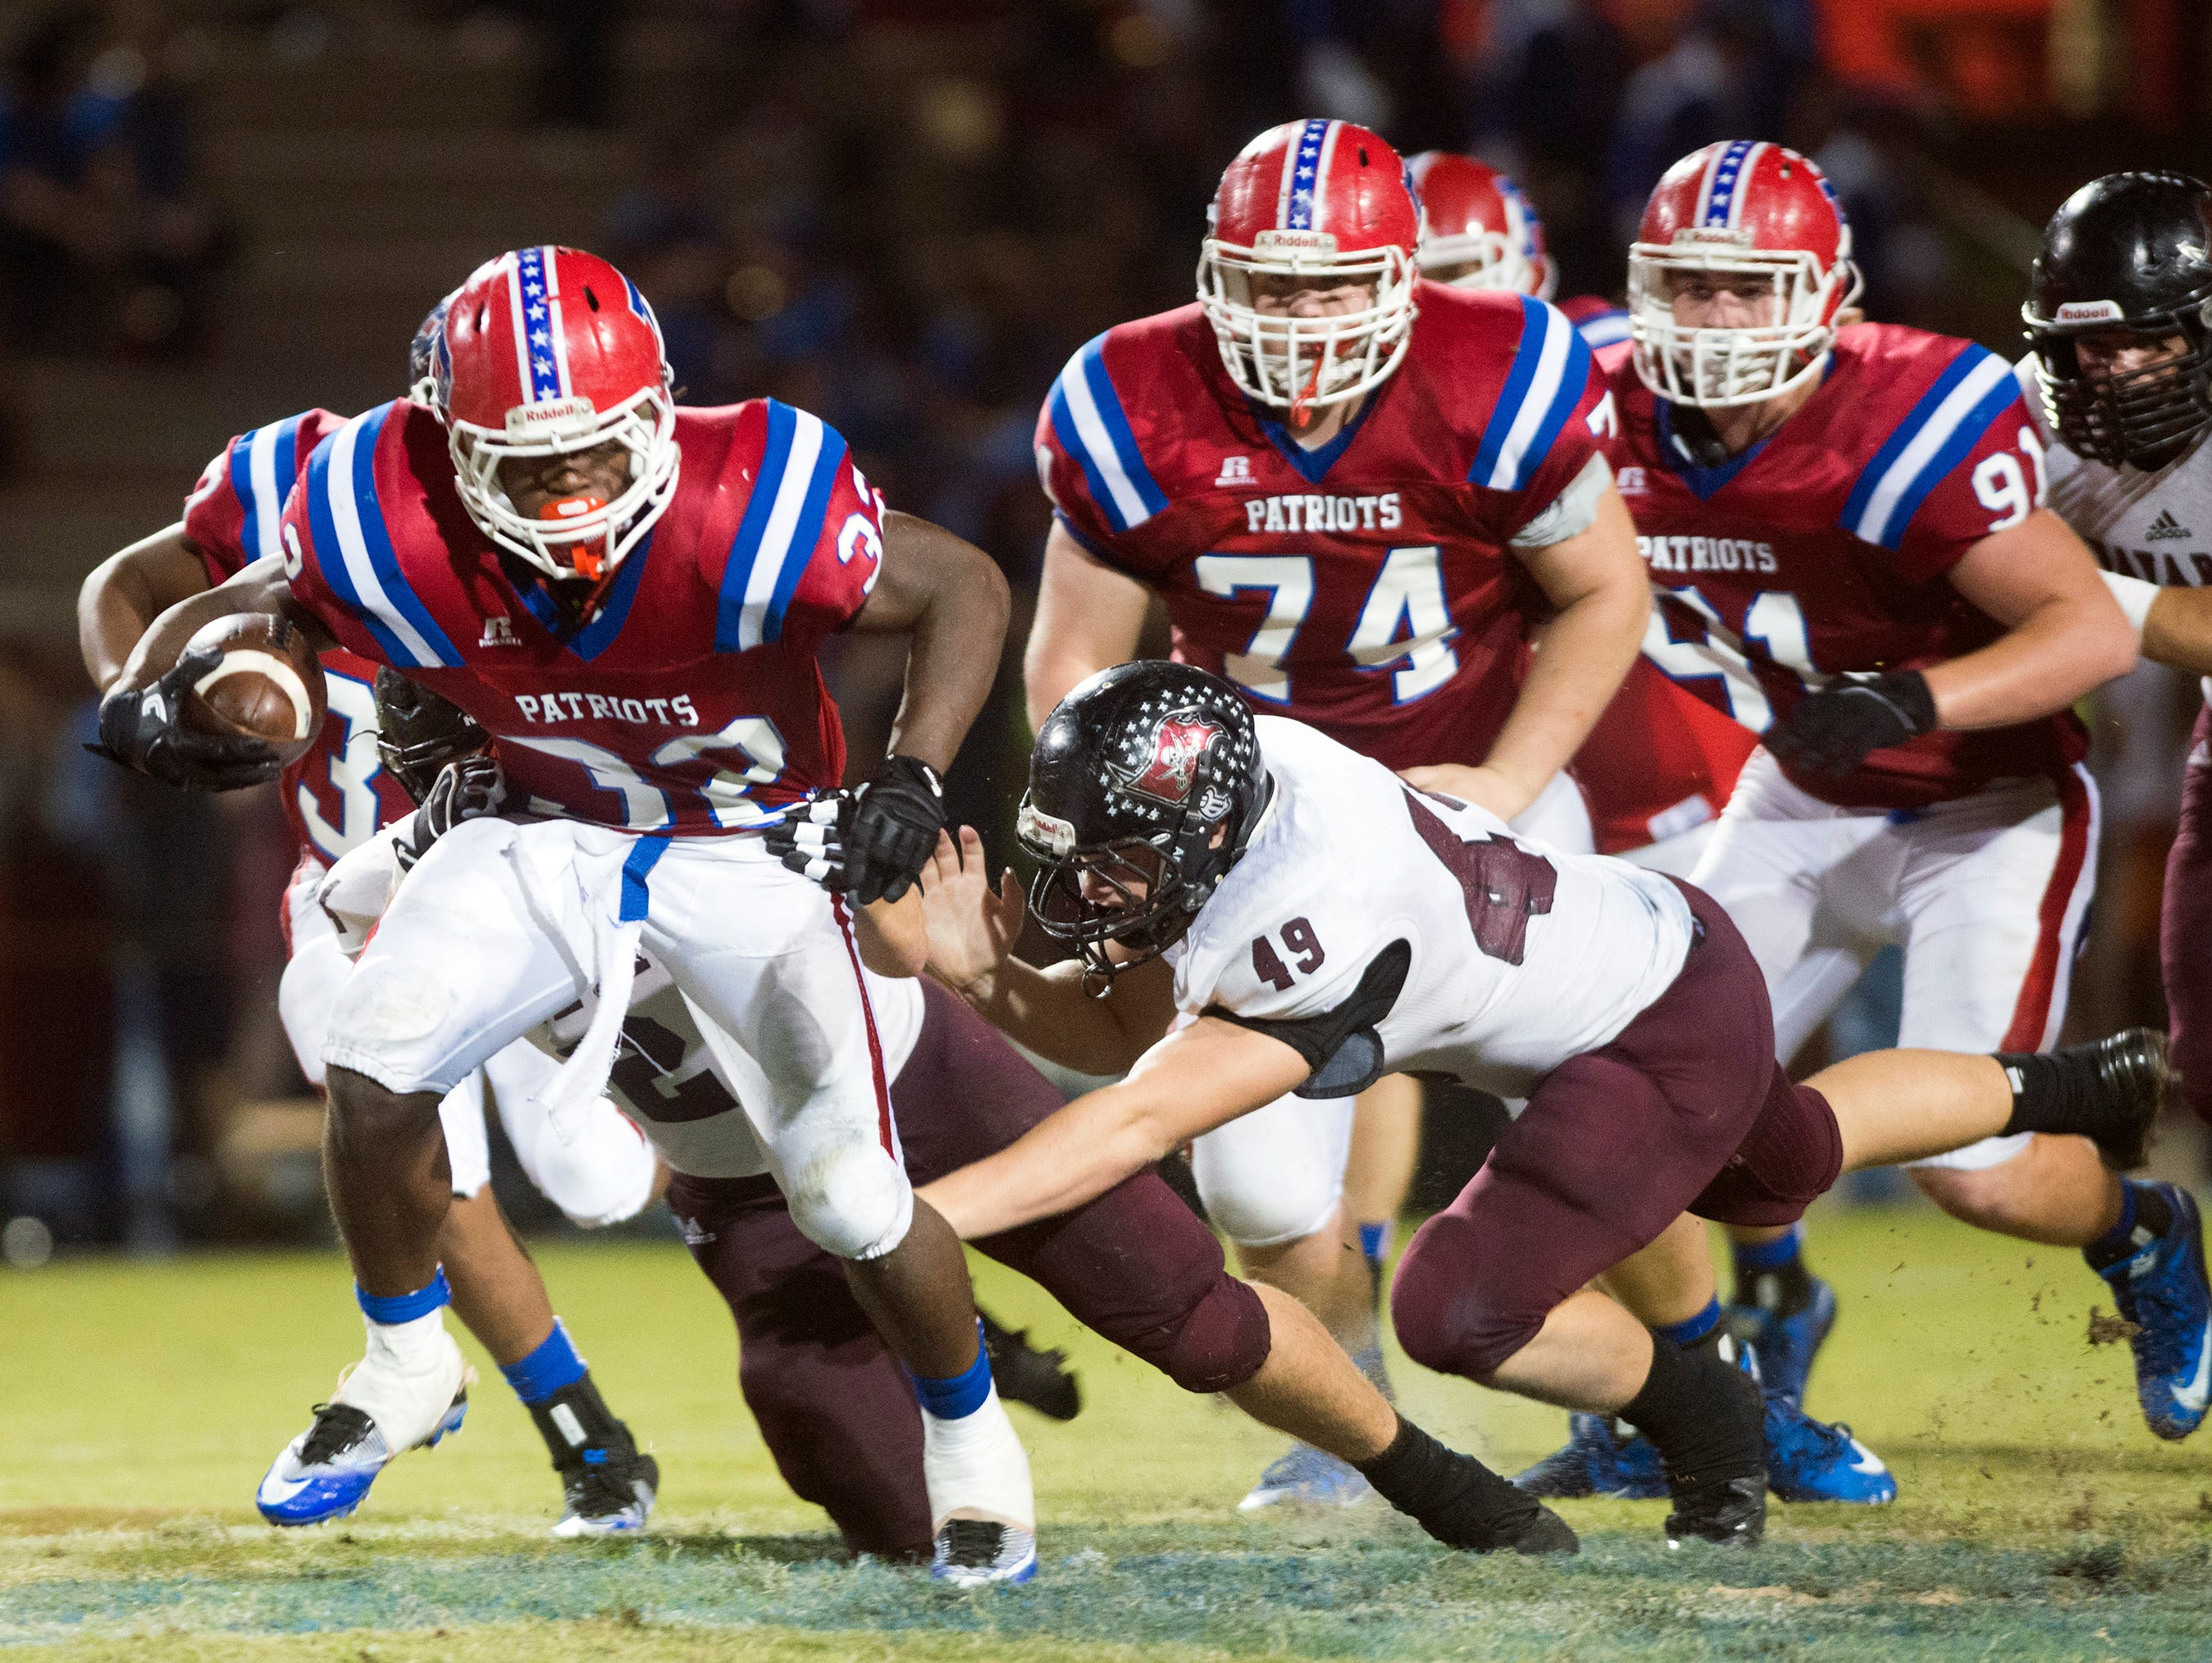 Pace High School running back Anthony Johnson, Jr. (No. 32) gives Navarre High School defensive end, Ryan Struck, (No. 49), the slip to gain extra yards during Friday night's District 2-6A matchup.